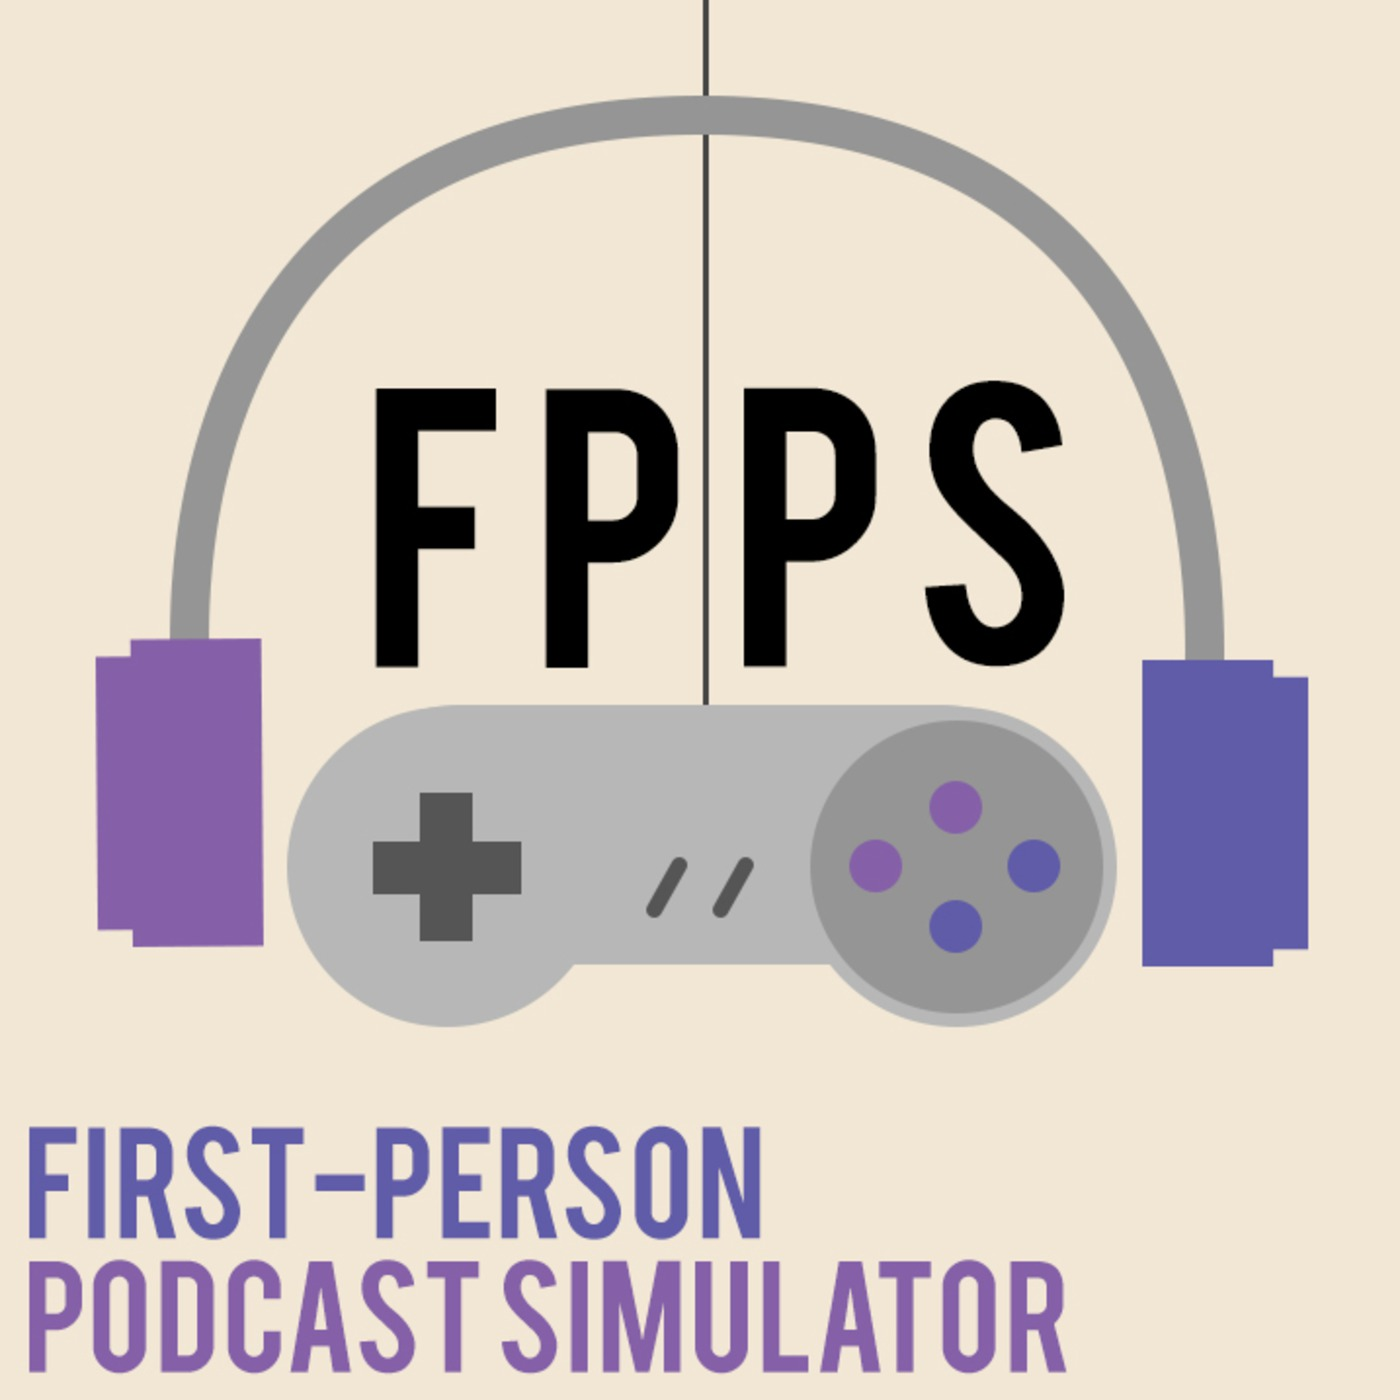 First-Person Podcast Simulator